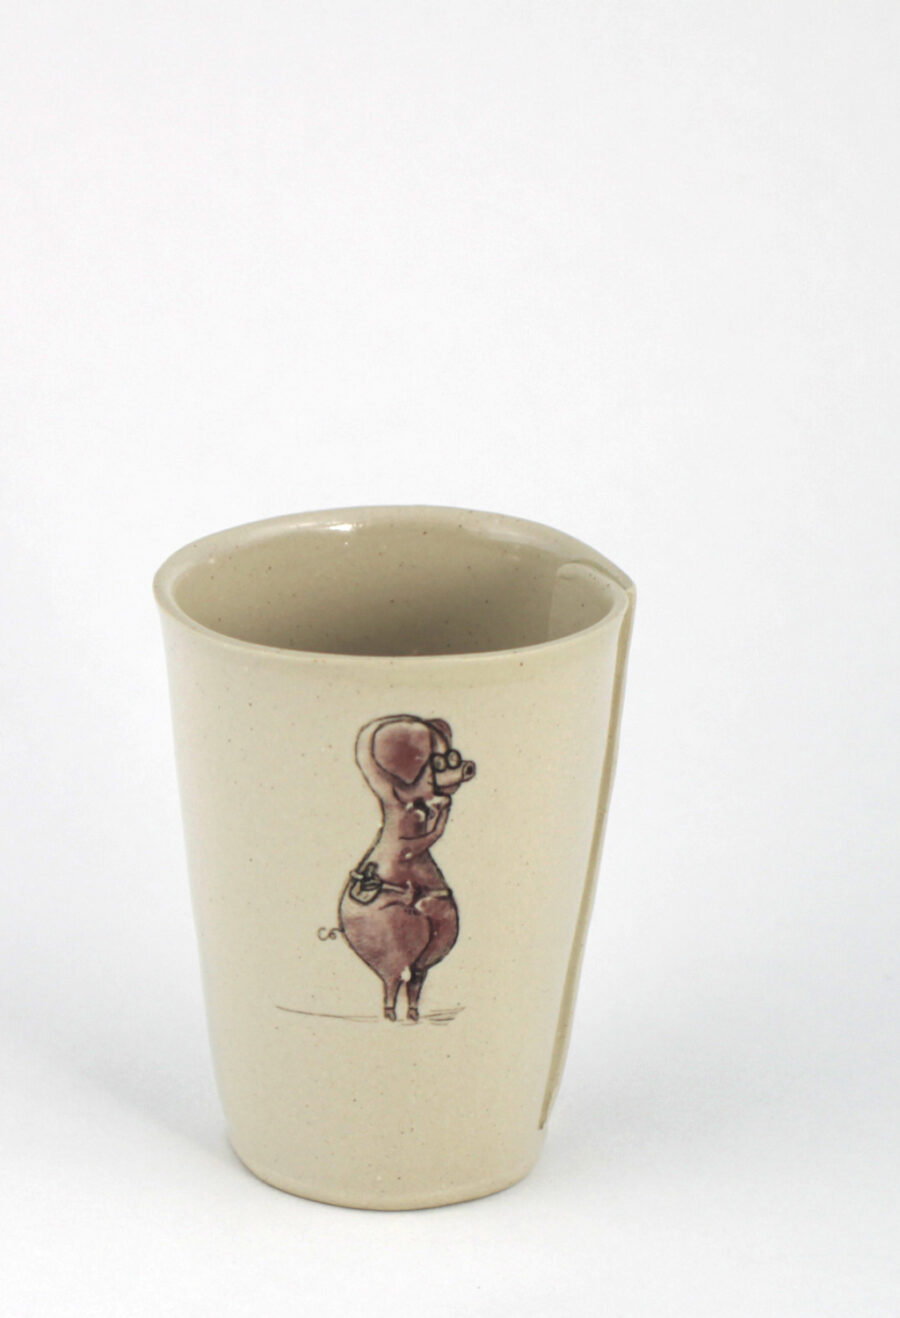 keramikbecher-kaffee-mit-illustriertem-Schwein-am-viehtheater-my-deer-illustrated-ceramics